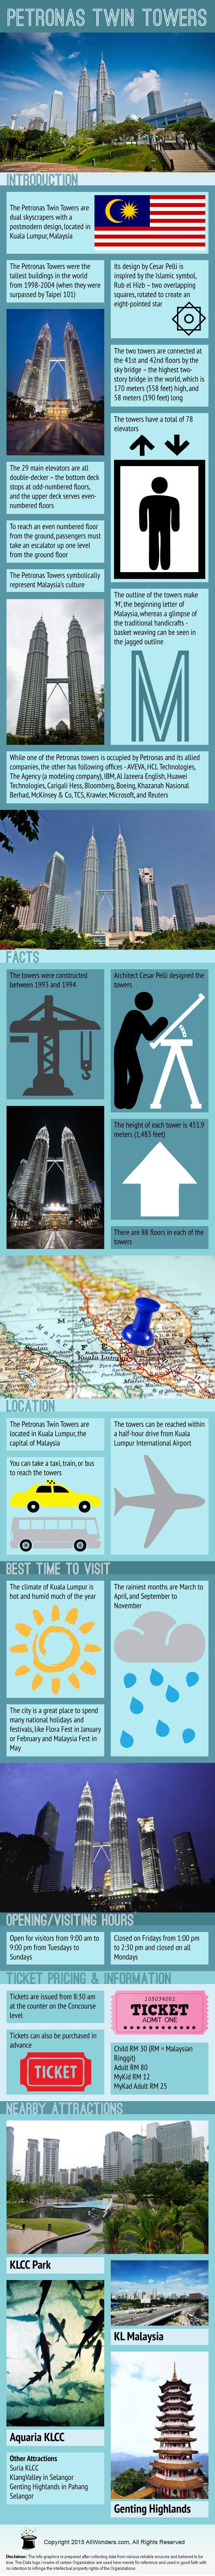 Petronas Twin Towers Infographic showing facts and Information about Twin Towers in Malaysia. Know about its Location, Best time to visit , nearby attractions and more.